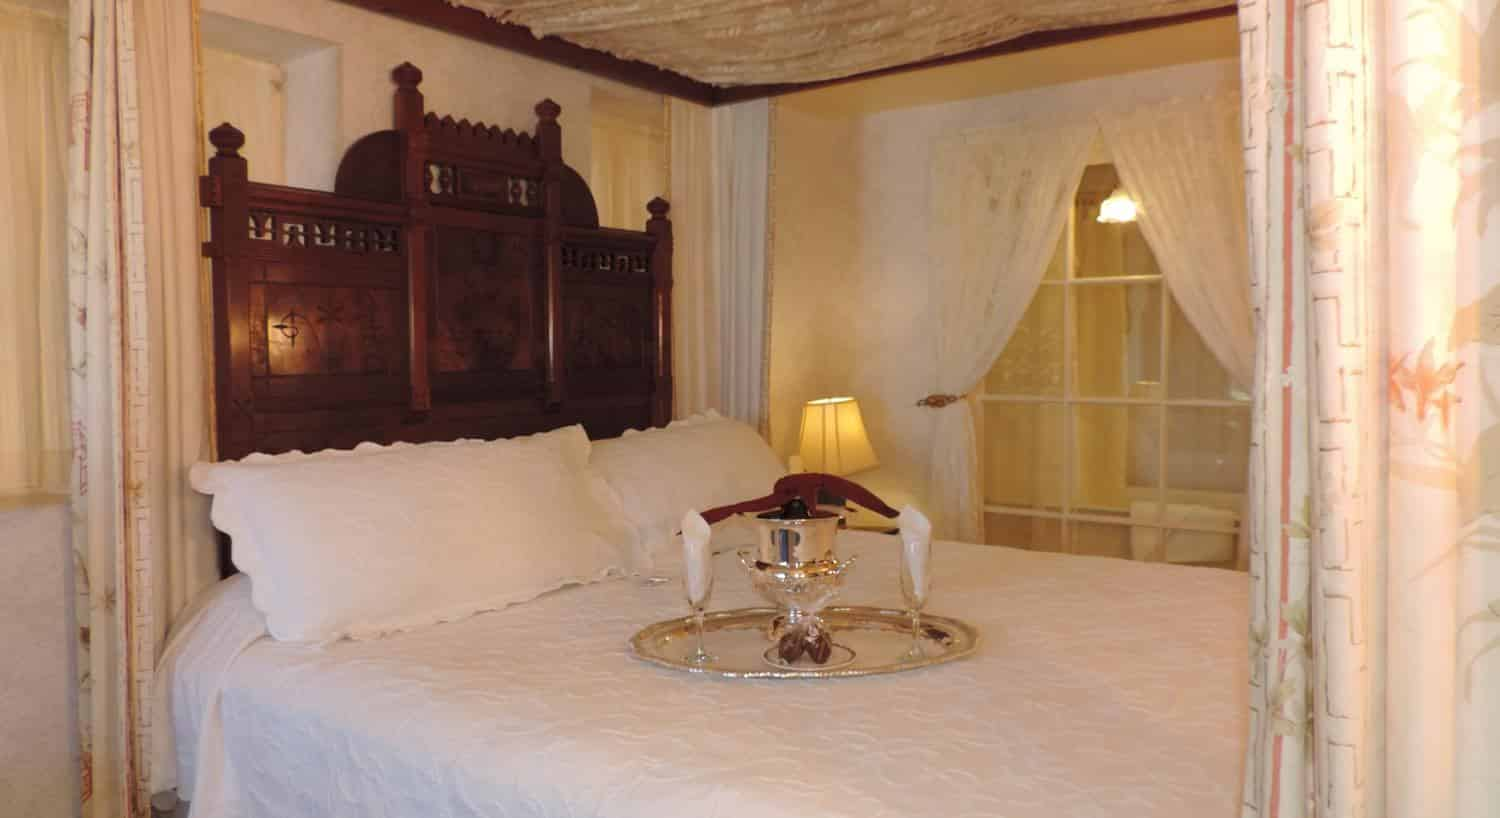 Eastlake guest room's canopy bed with carved wood headboard, white bedding, and champagne chilling on the bed